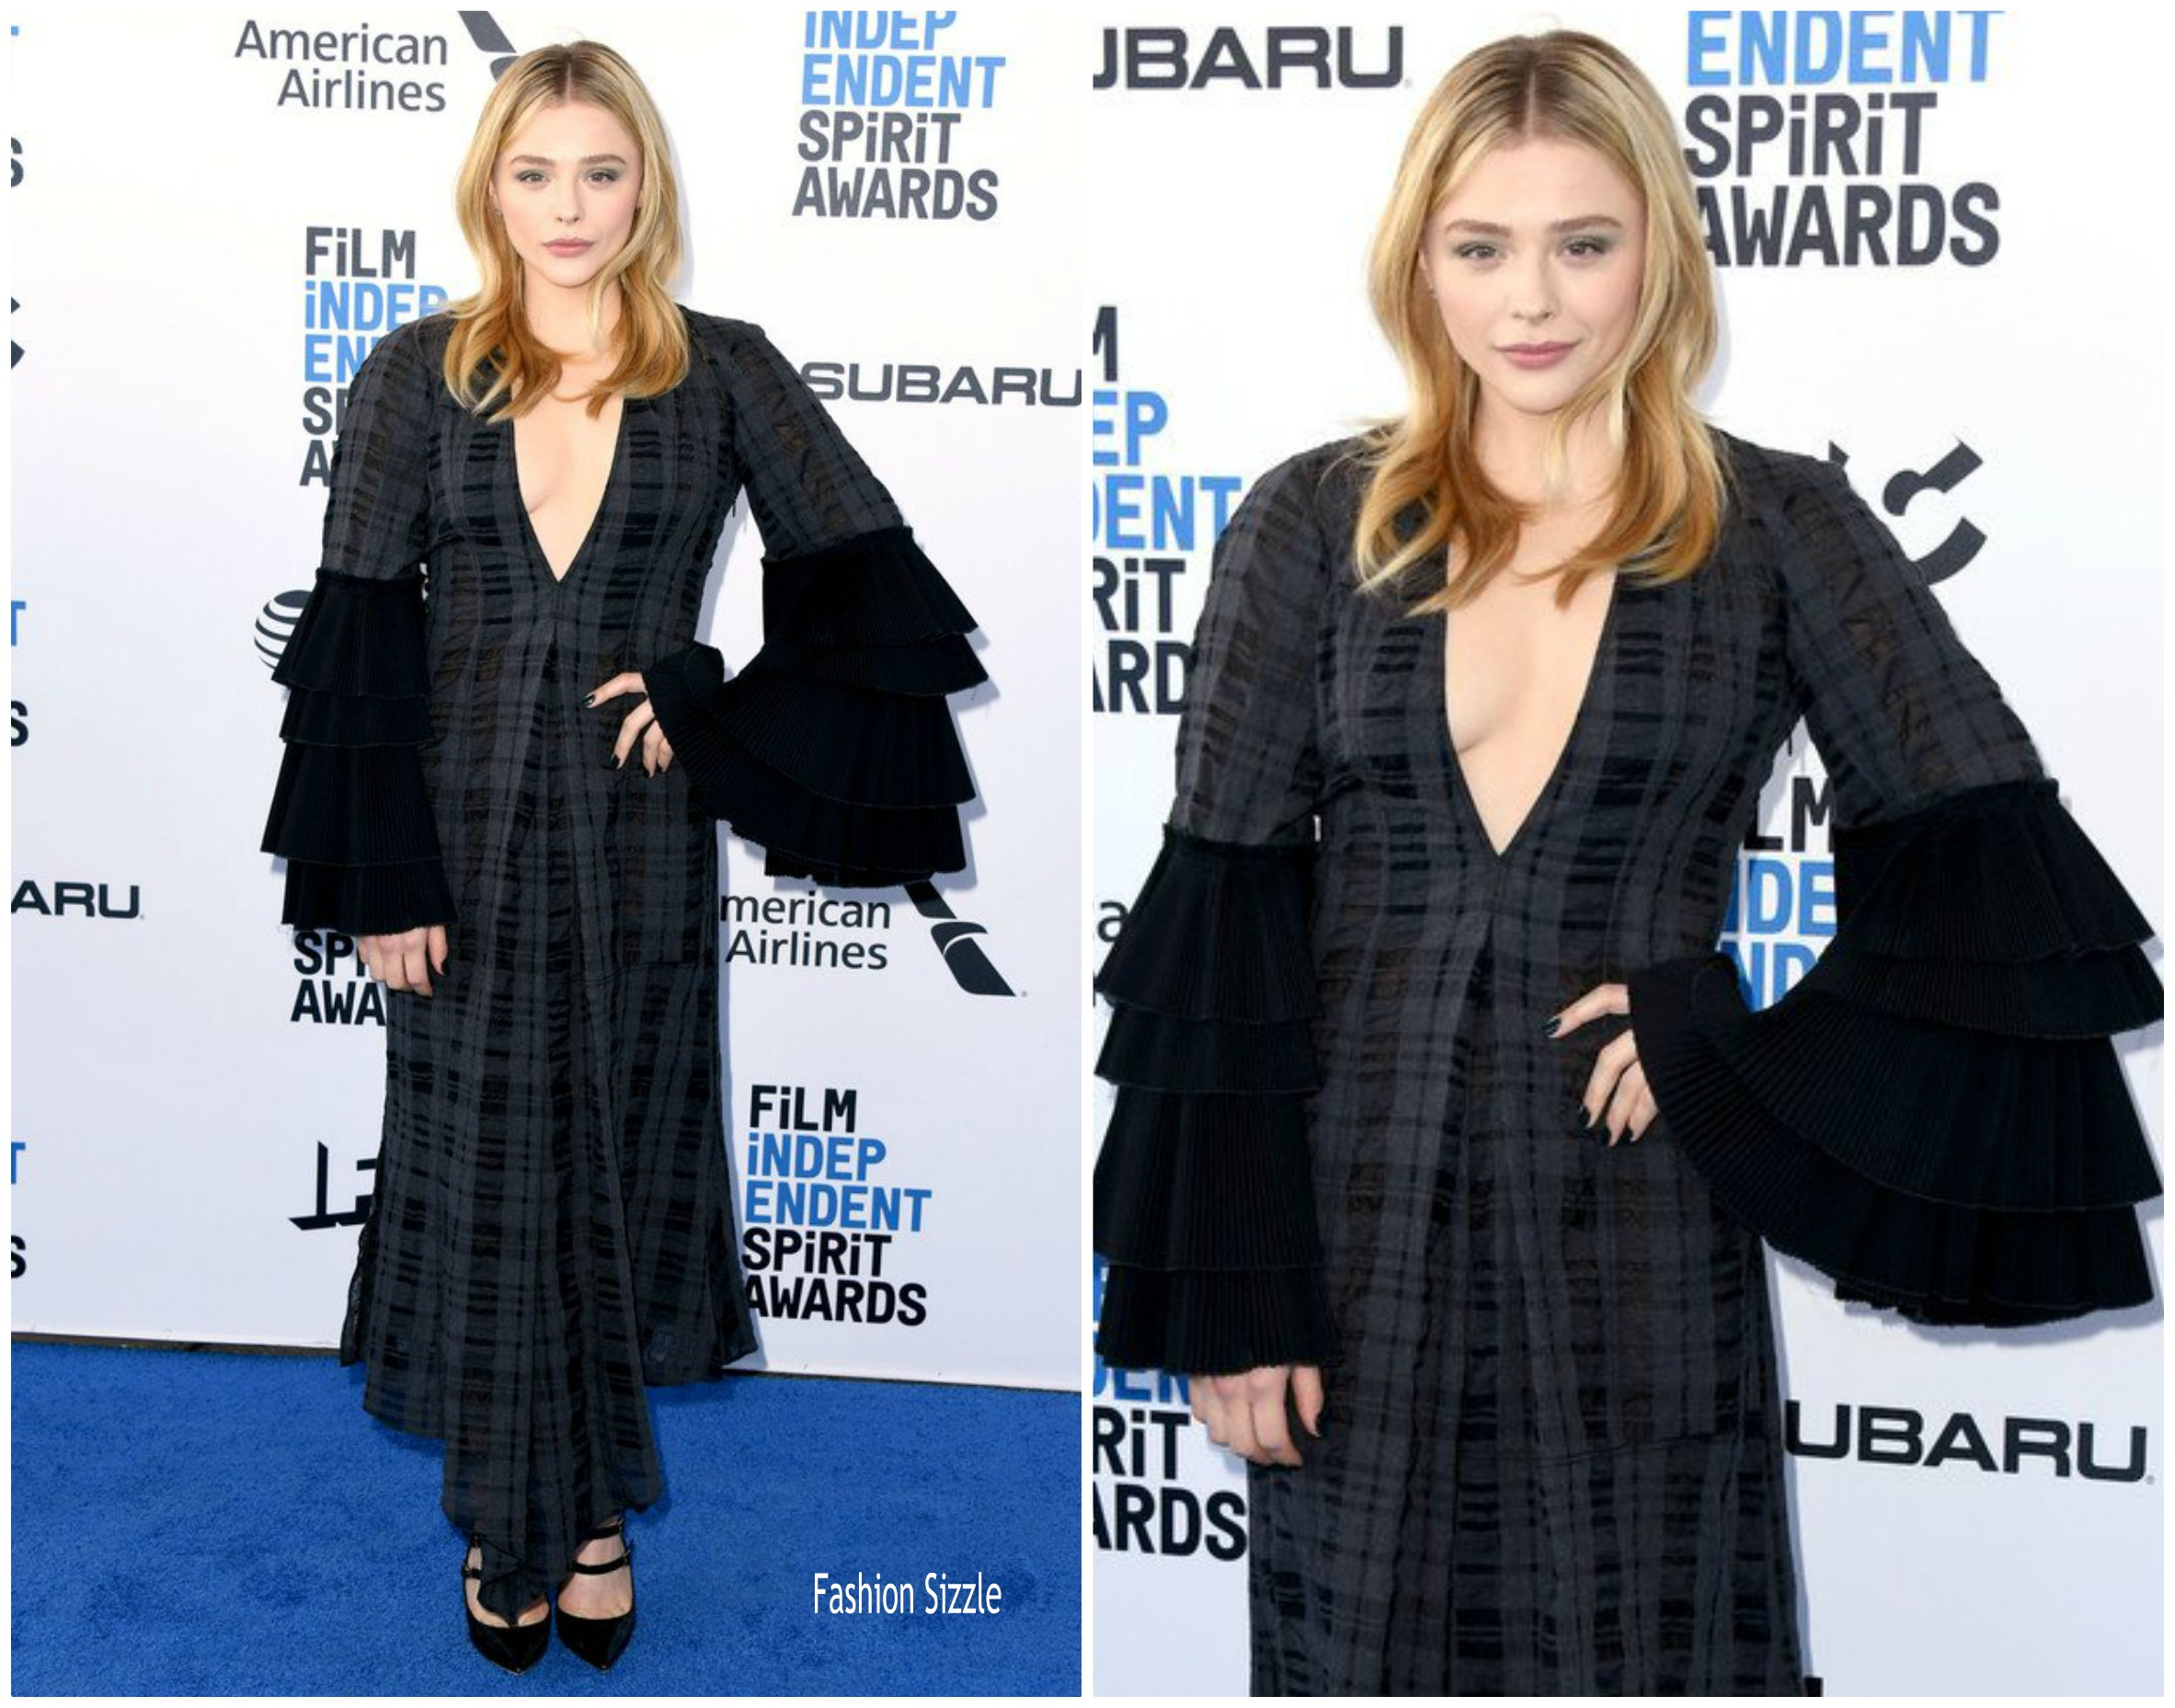 chloe-grace-moretz-in-loewe-2019-film-independent-spirit-awards